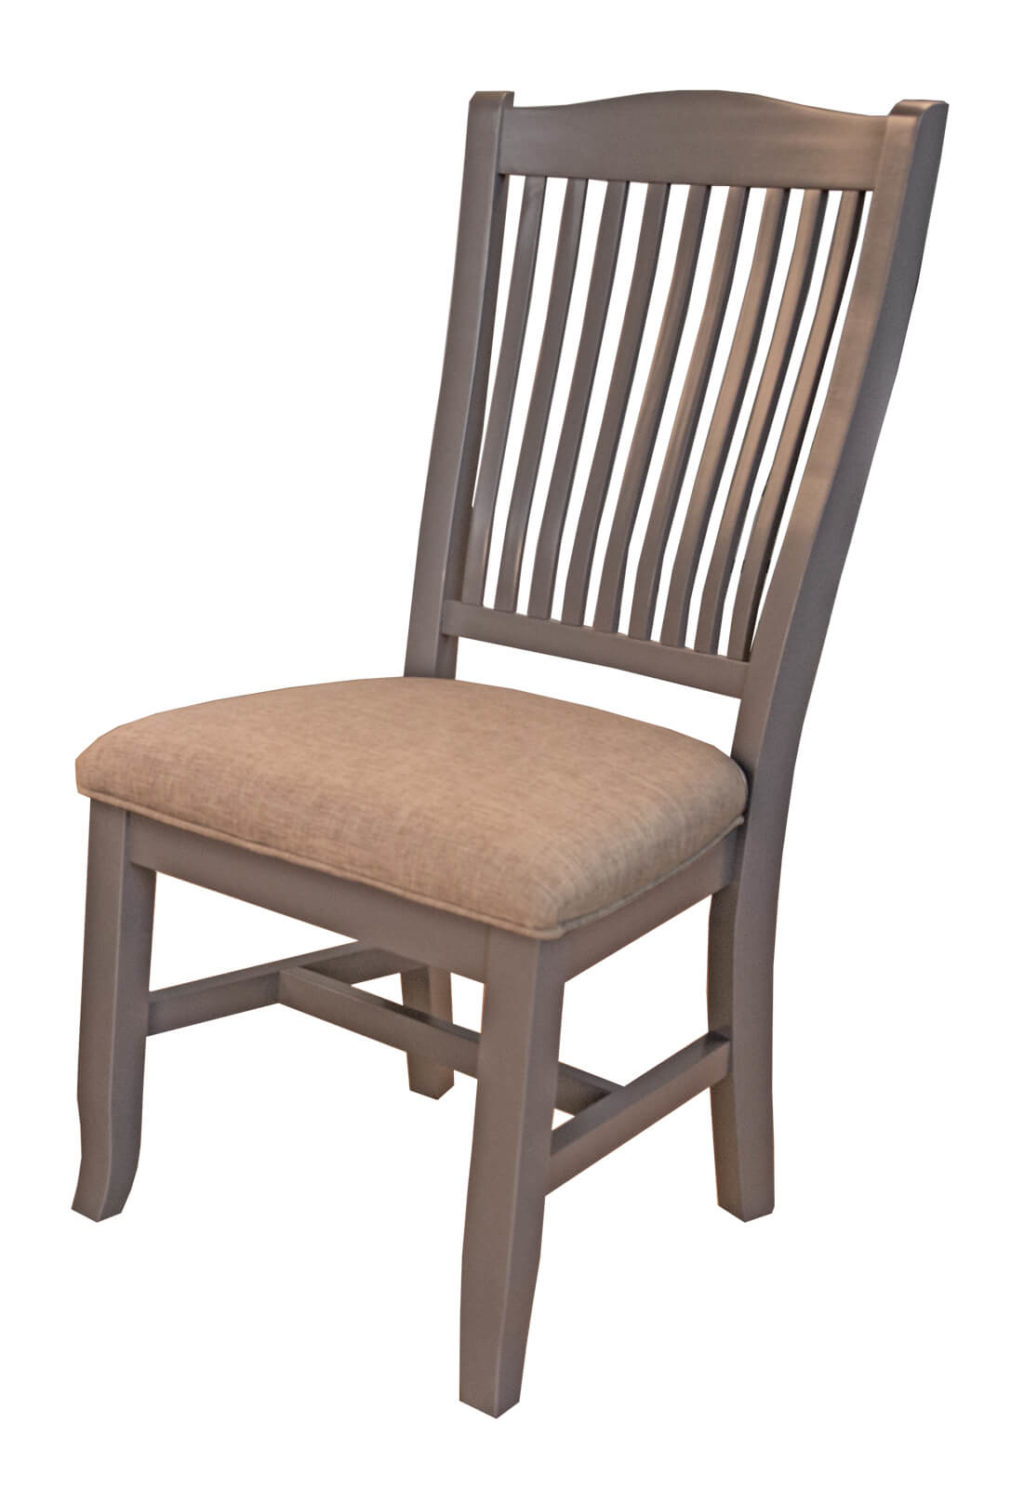 AAmerica Port Townsend Upholstered Chair 2